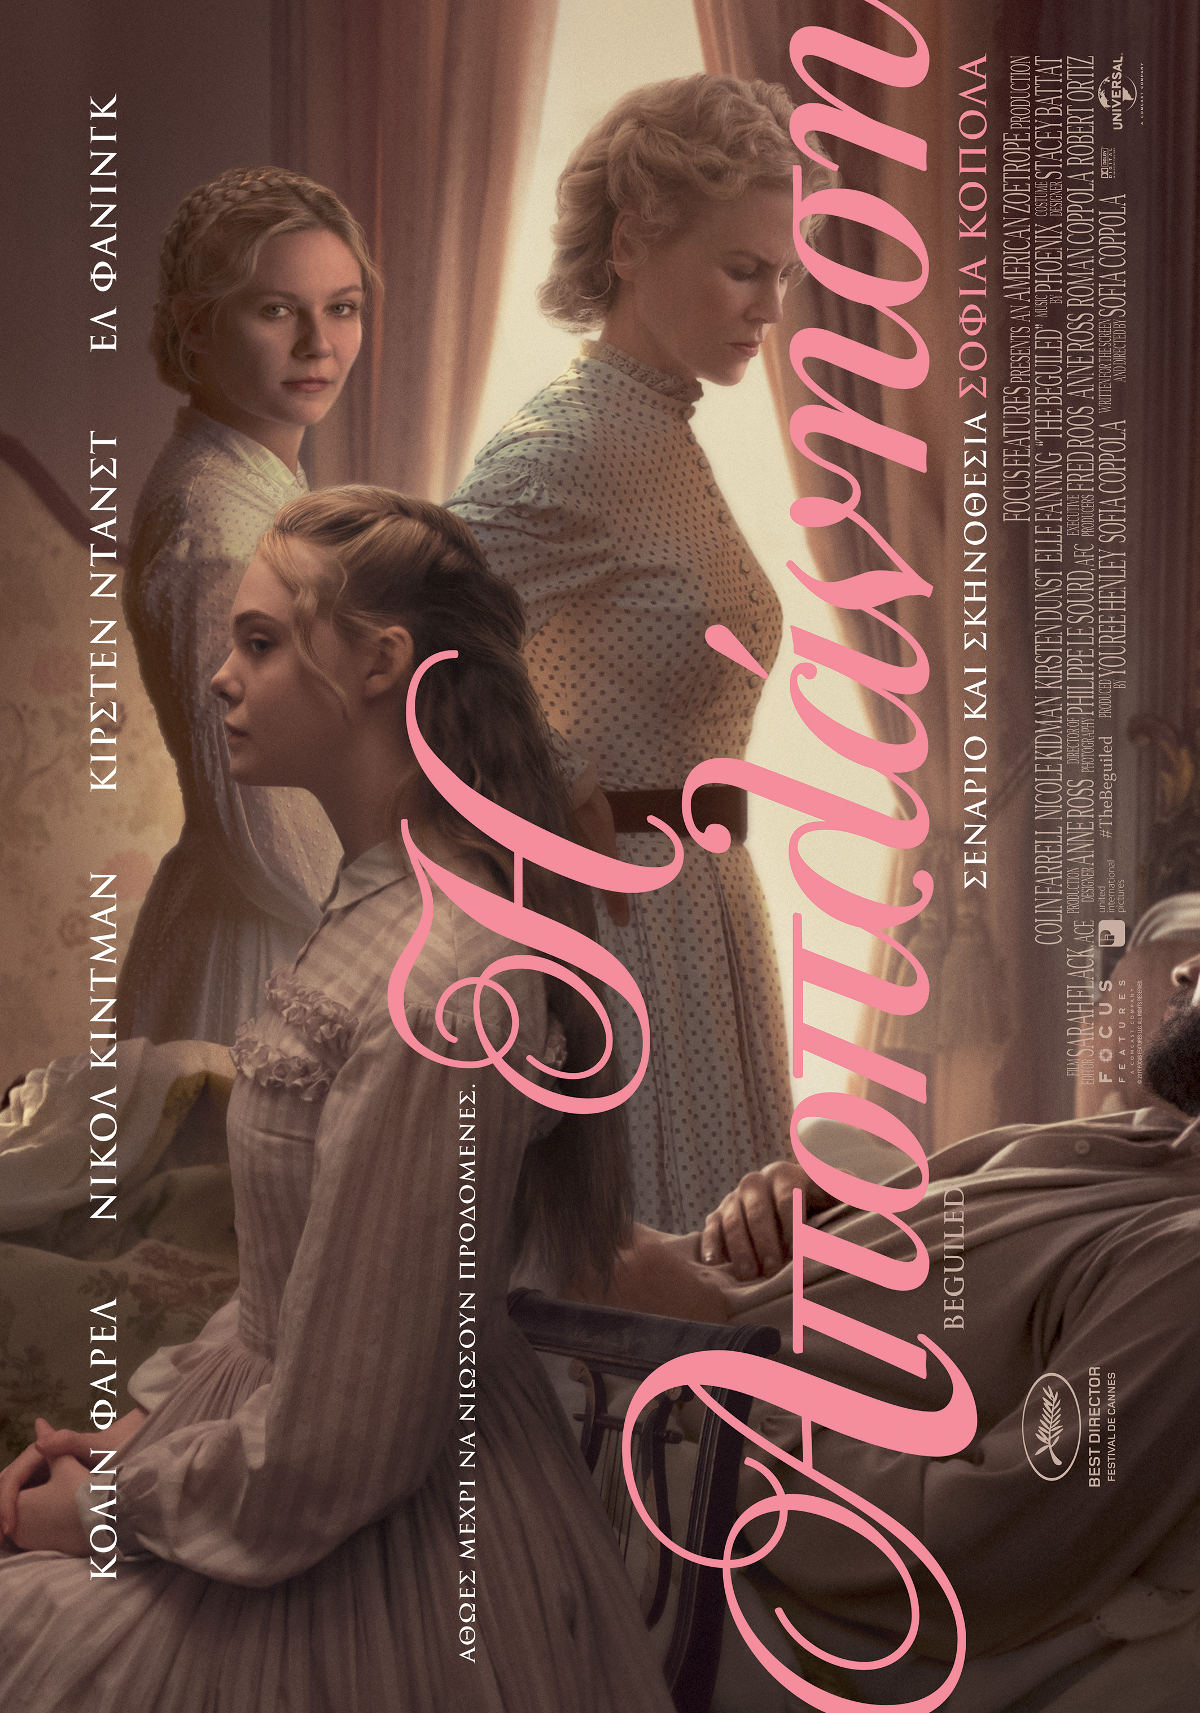 The Beguiled 00